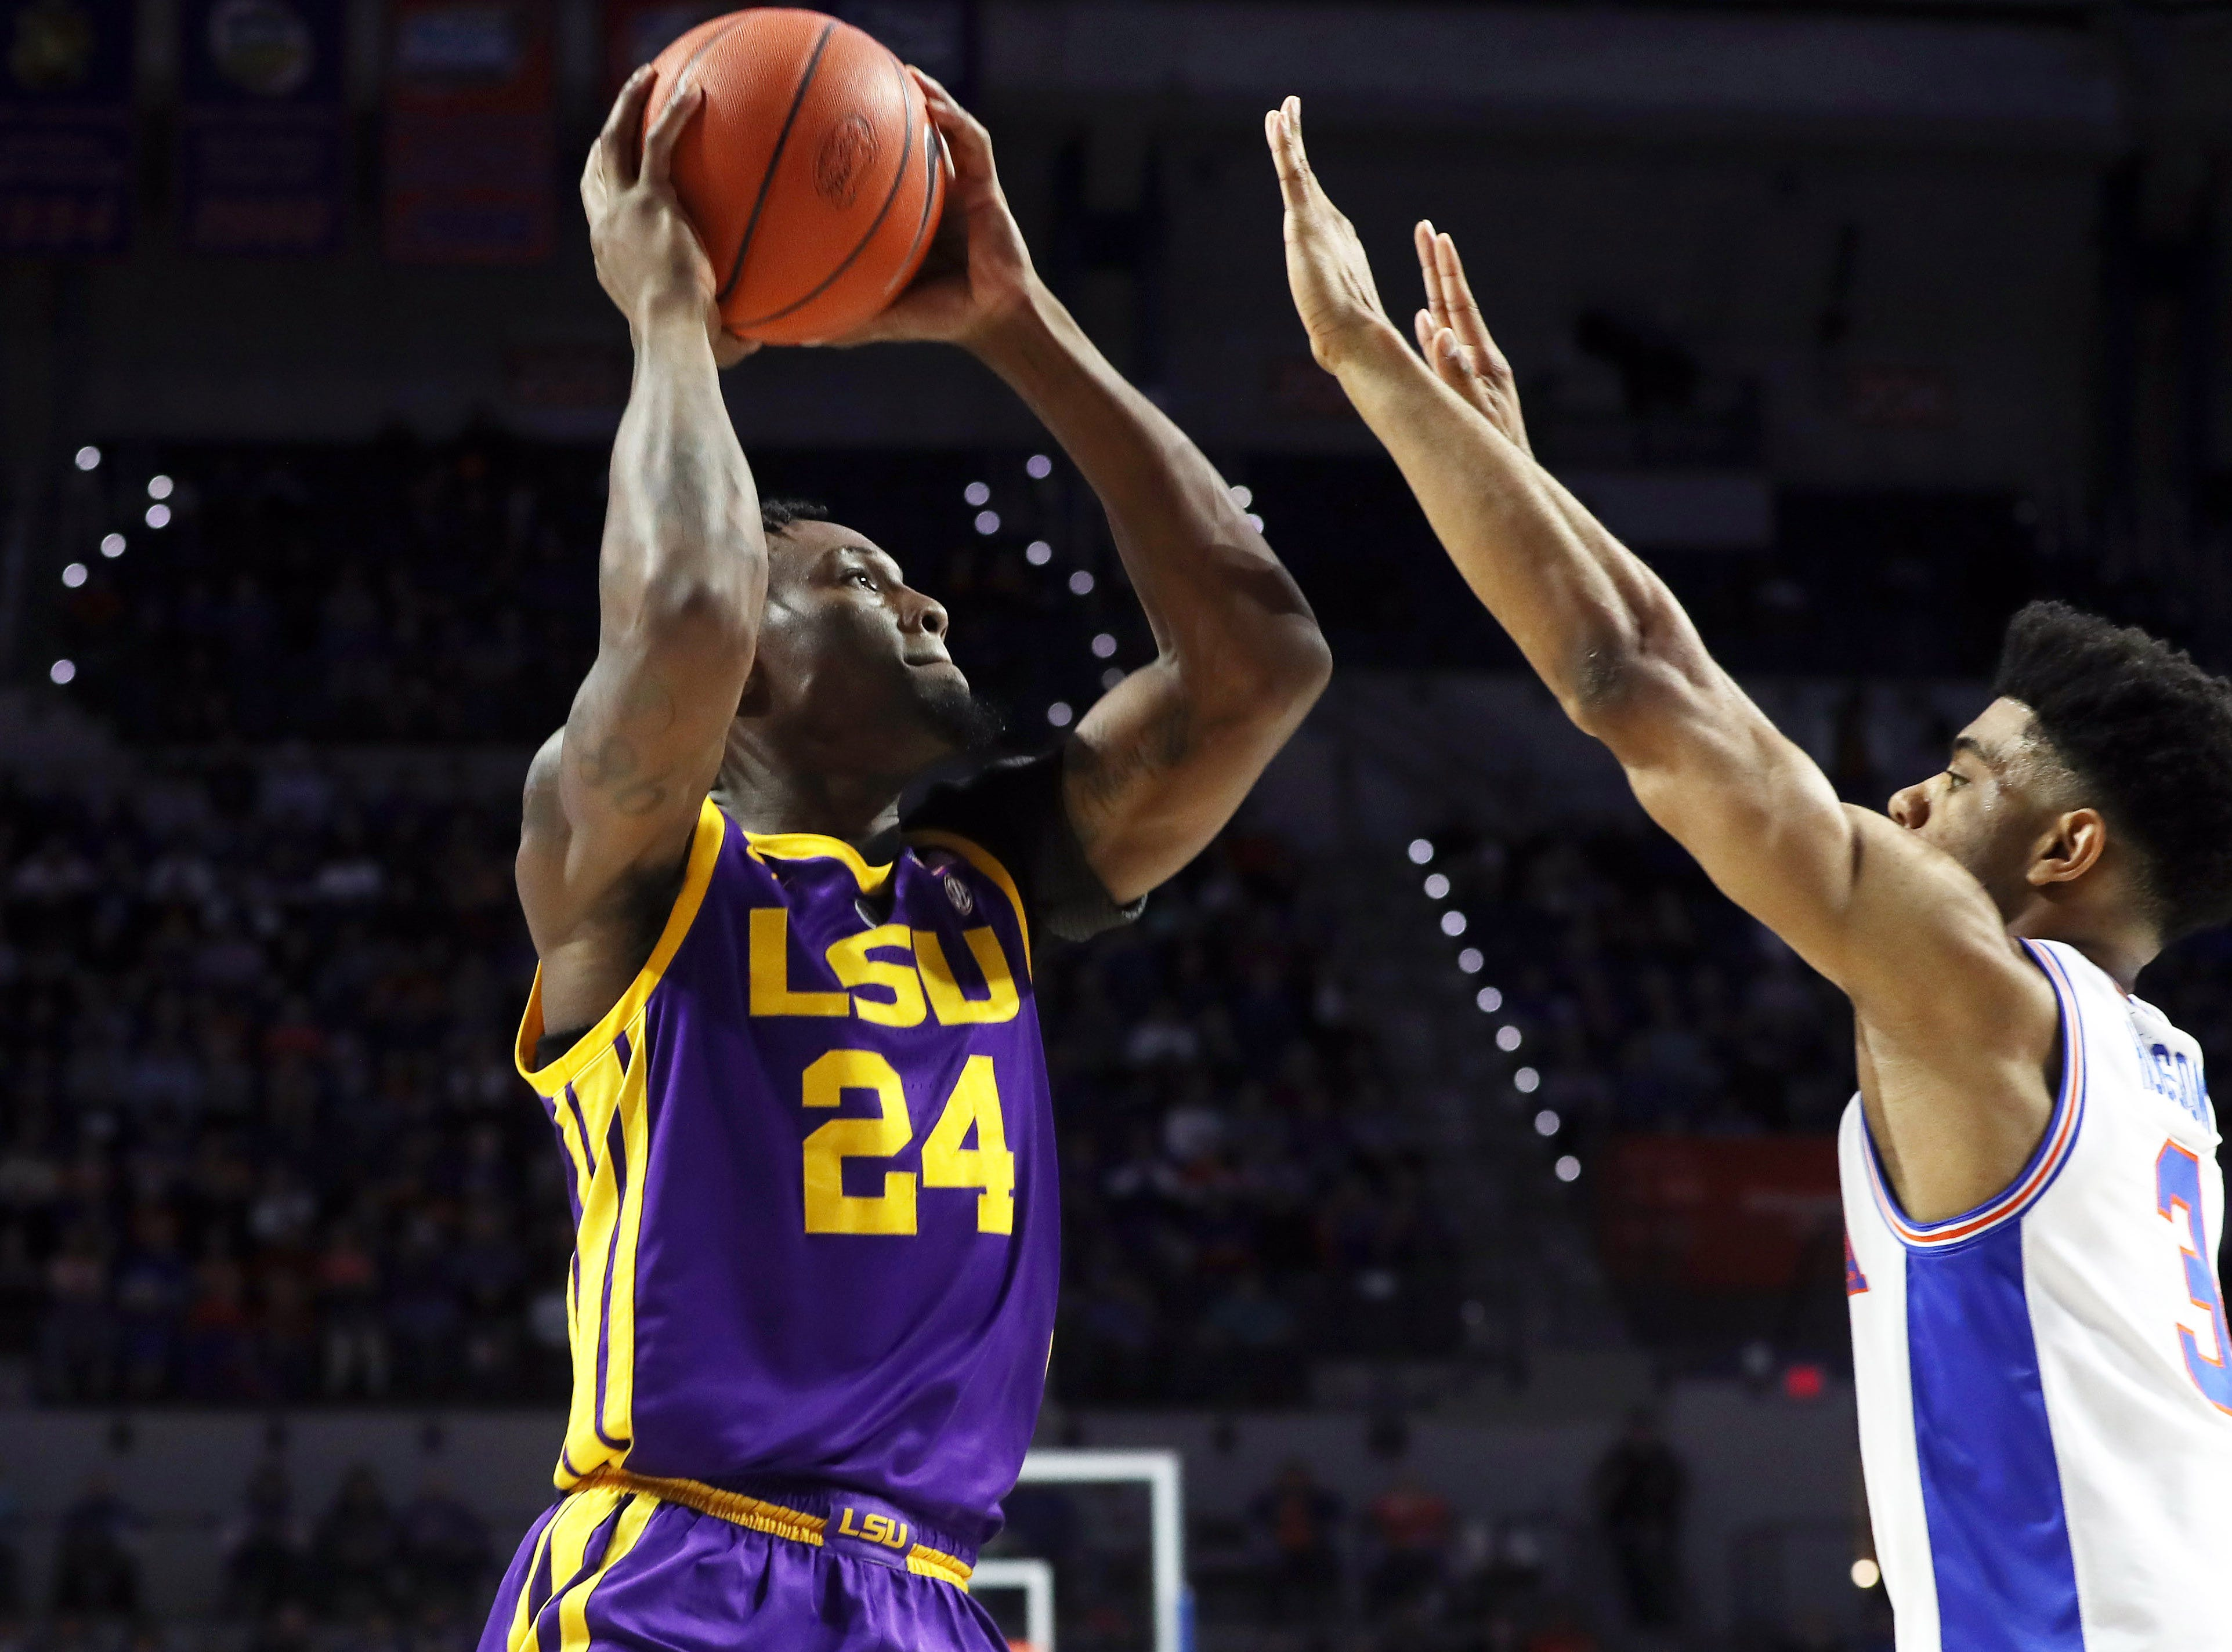 Mar 6, 2019; Gainesville, FL, USA; LSU Tigers forward Emmitt Williams (24) shoots the ball over Florida Gators guard Jalen Hudson (3) during the first half at Exactech Arena. Mandatory Credit: Kim Klement-USA TODAY Sports